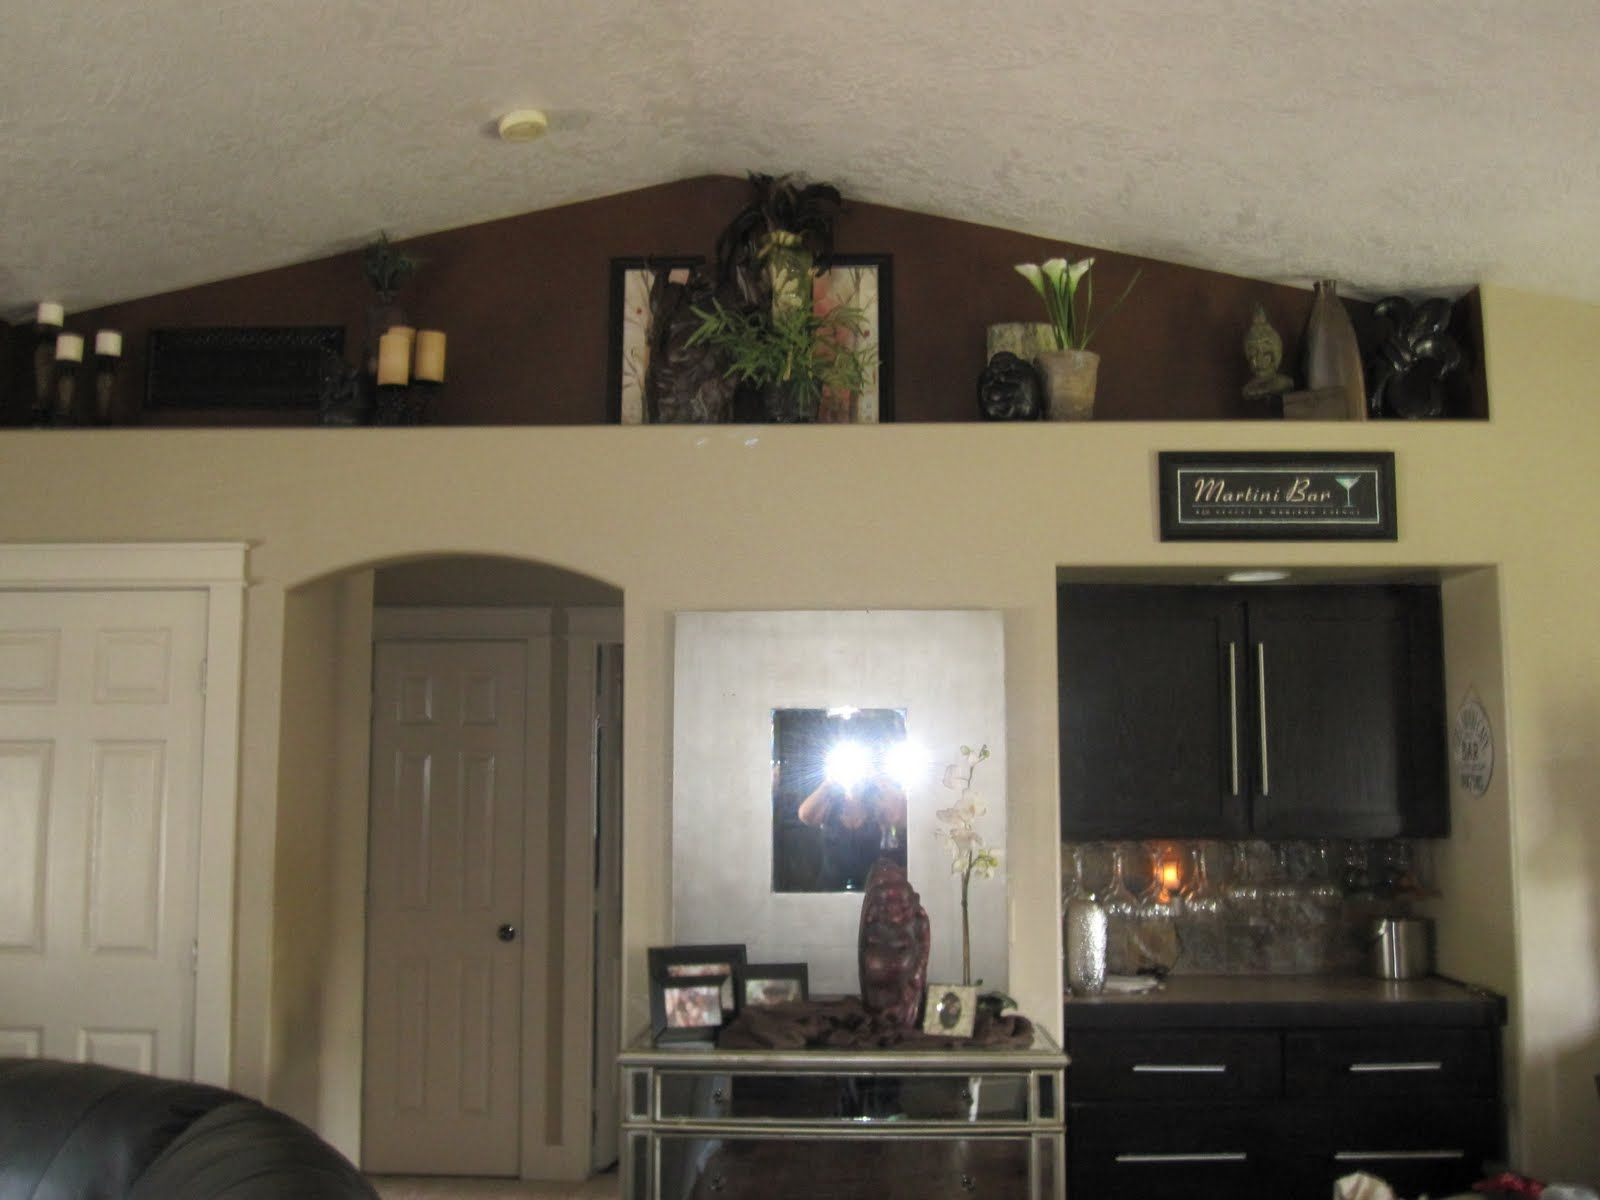 Vaulted ceilings with shelf ideas plant shelves on the left and vaulted ceilings with shelf ideas plant shelves on the left and entertainment bar amipublicfo Choice Image